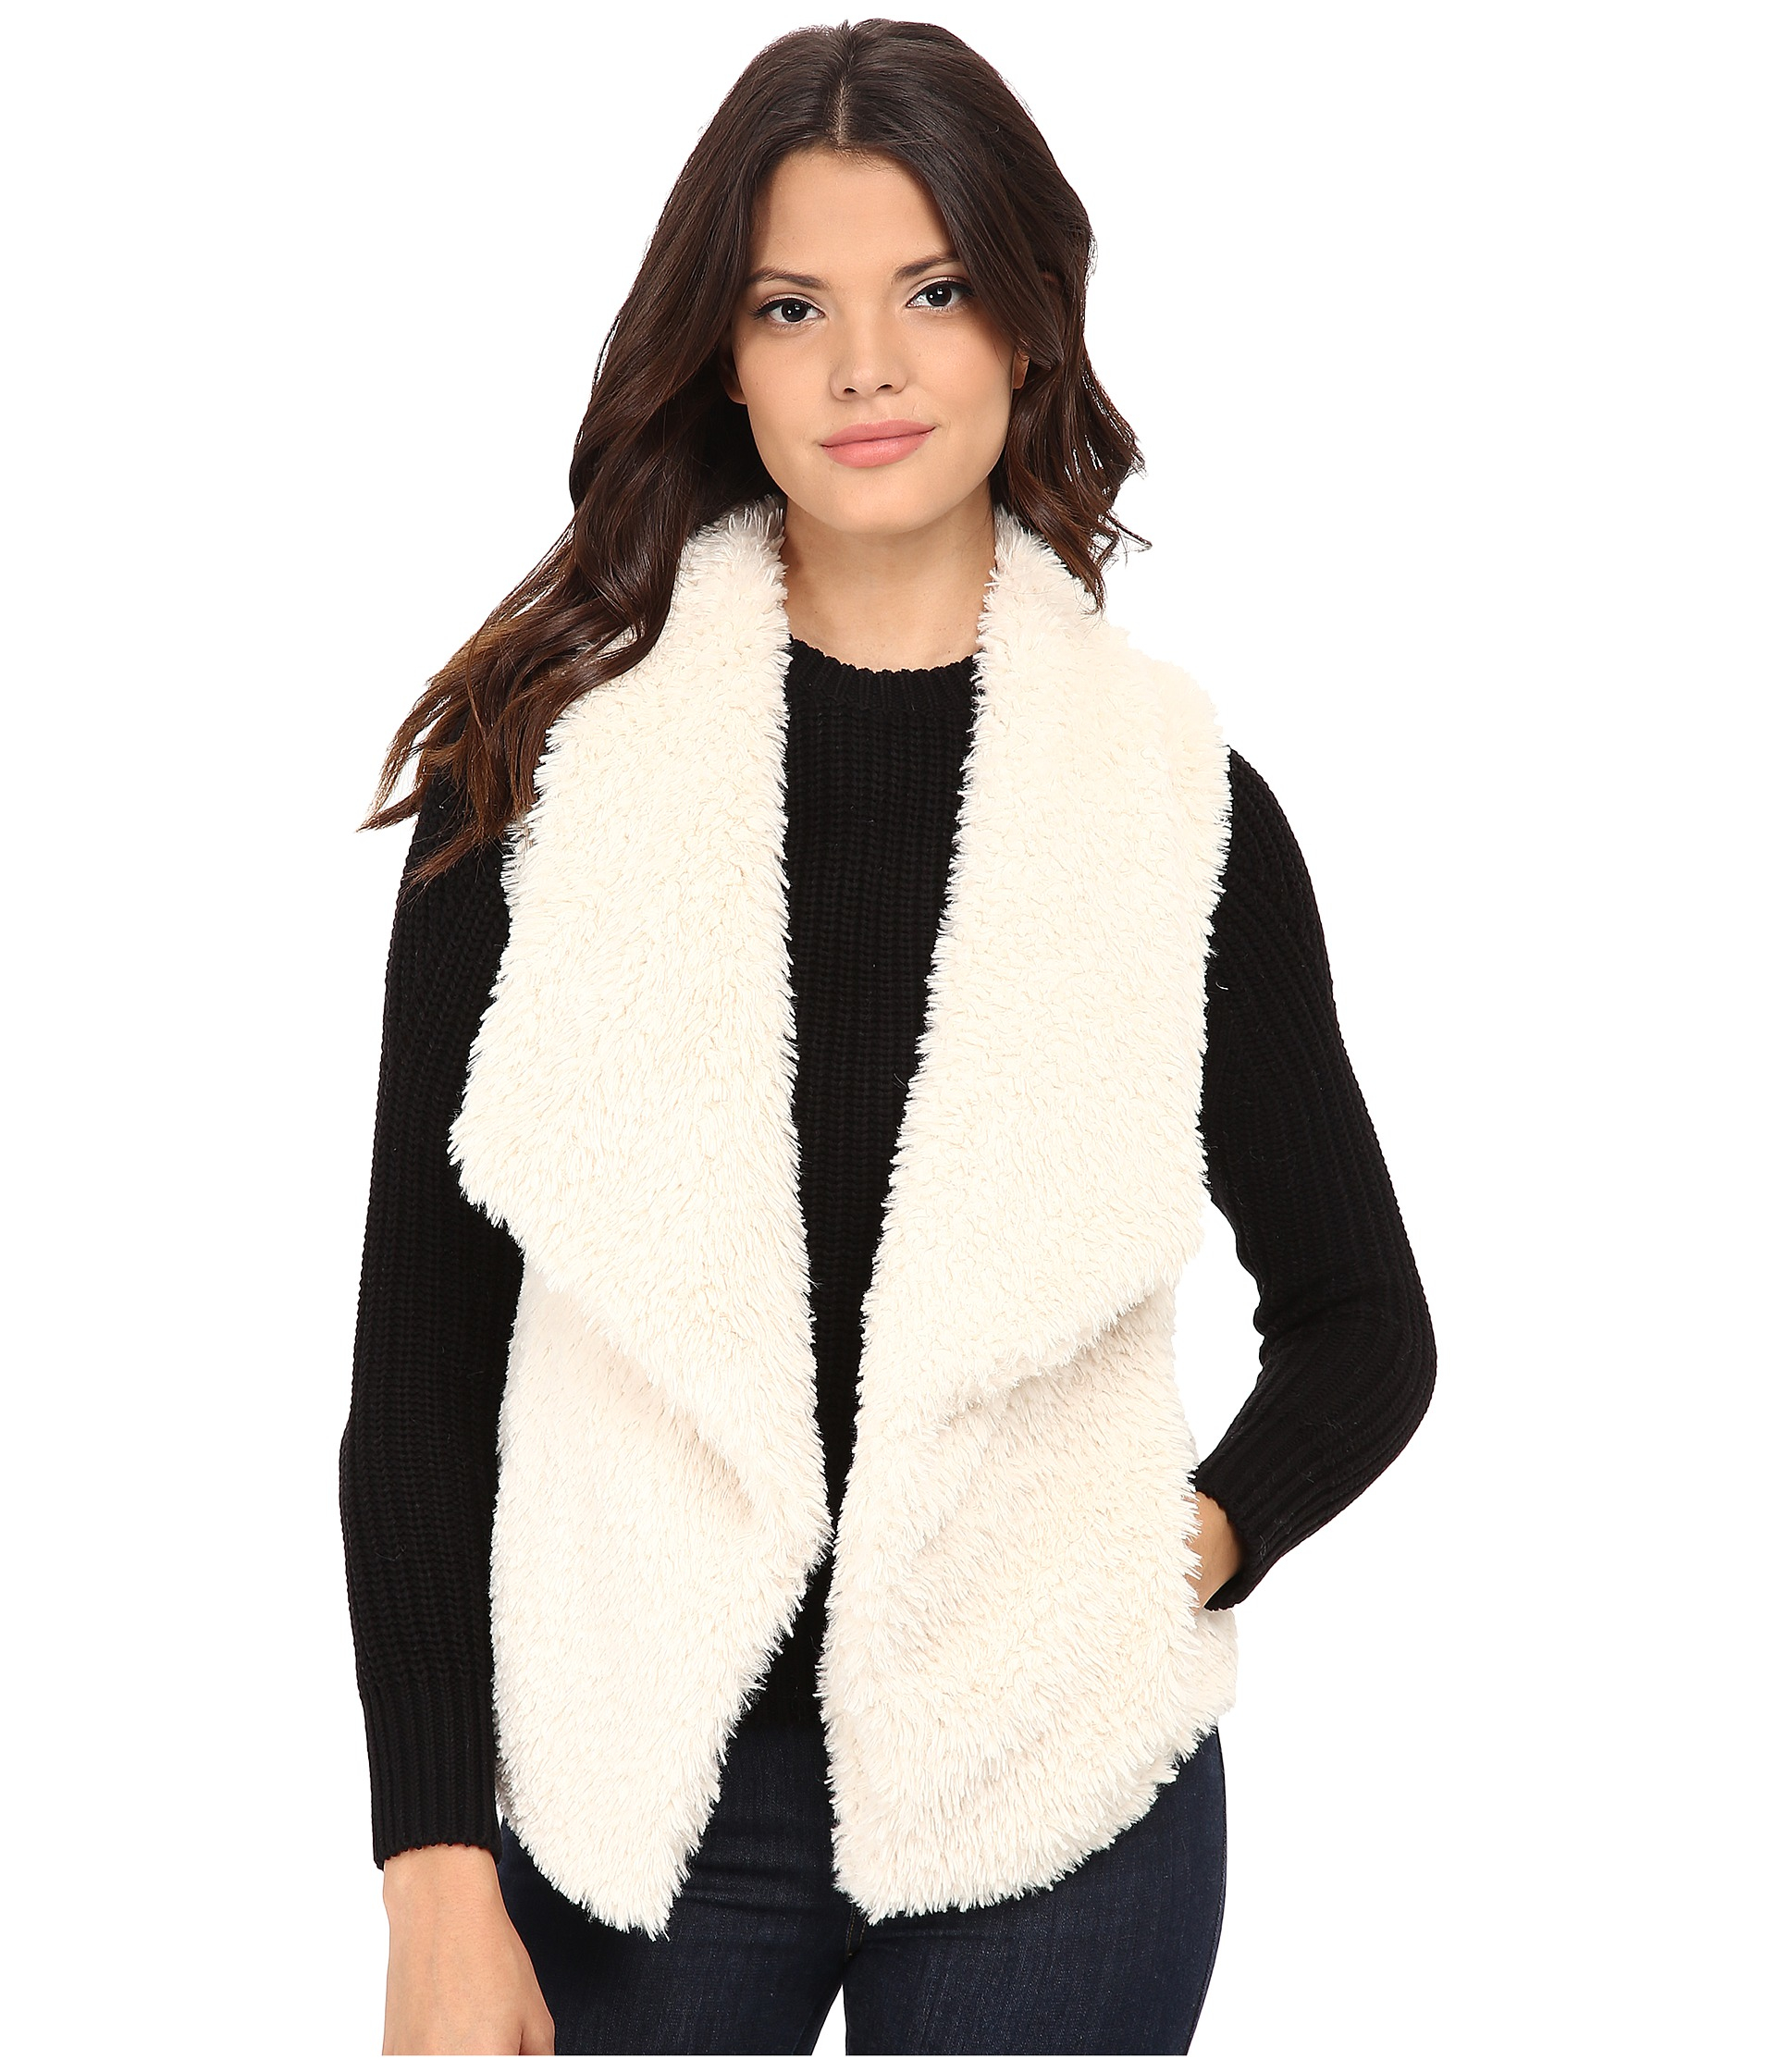 Find great deals on eBay for White Fur Gilet in Coats and Jackets for the Modern Lady. Shop with confidence. Find great deals on eBay for White Fur Gilet in Coats and Jackets for the Modern Lady. 1 x Vest Faux Fox Fur Waistcoat. Exact Material: Faux Fur. MPN: Does not apply. UK Women Lady Winter Warm Gilet Outwear Vest Faux Fox Fur.